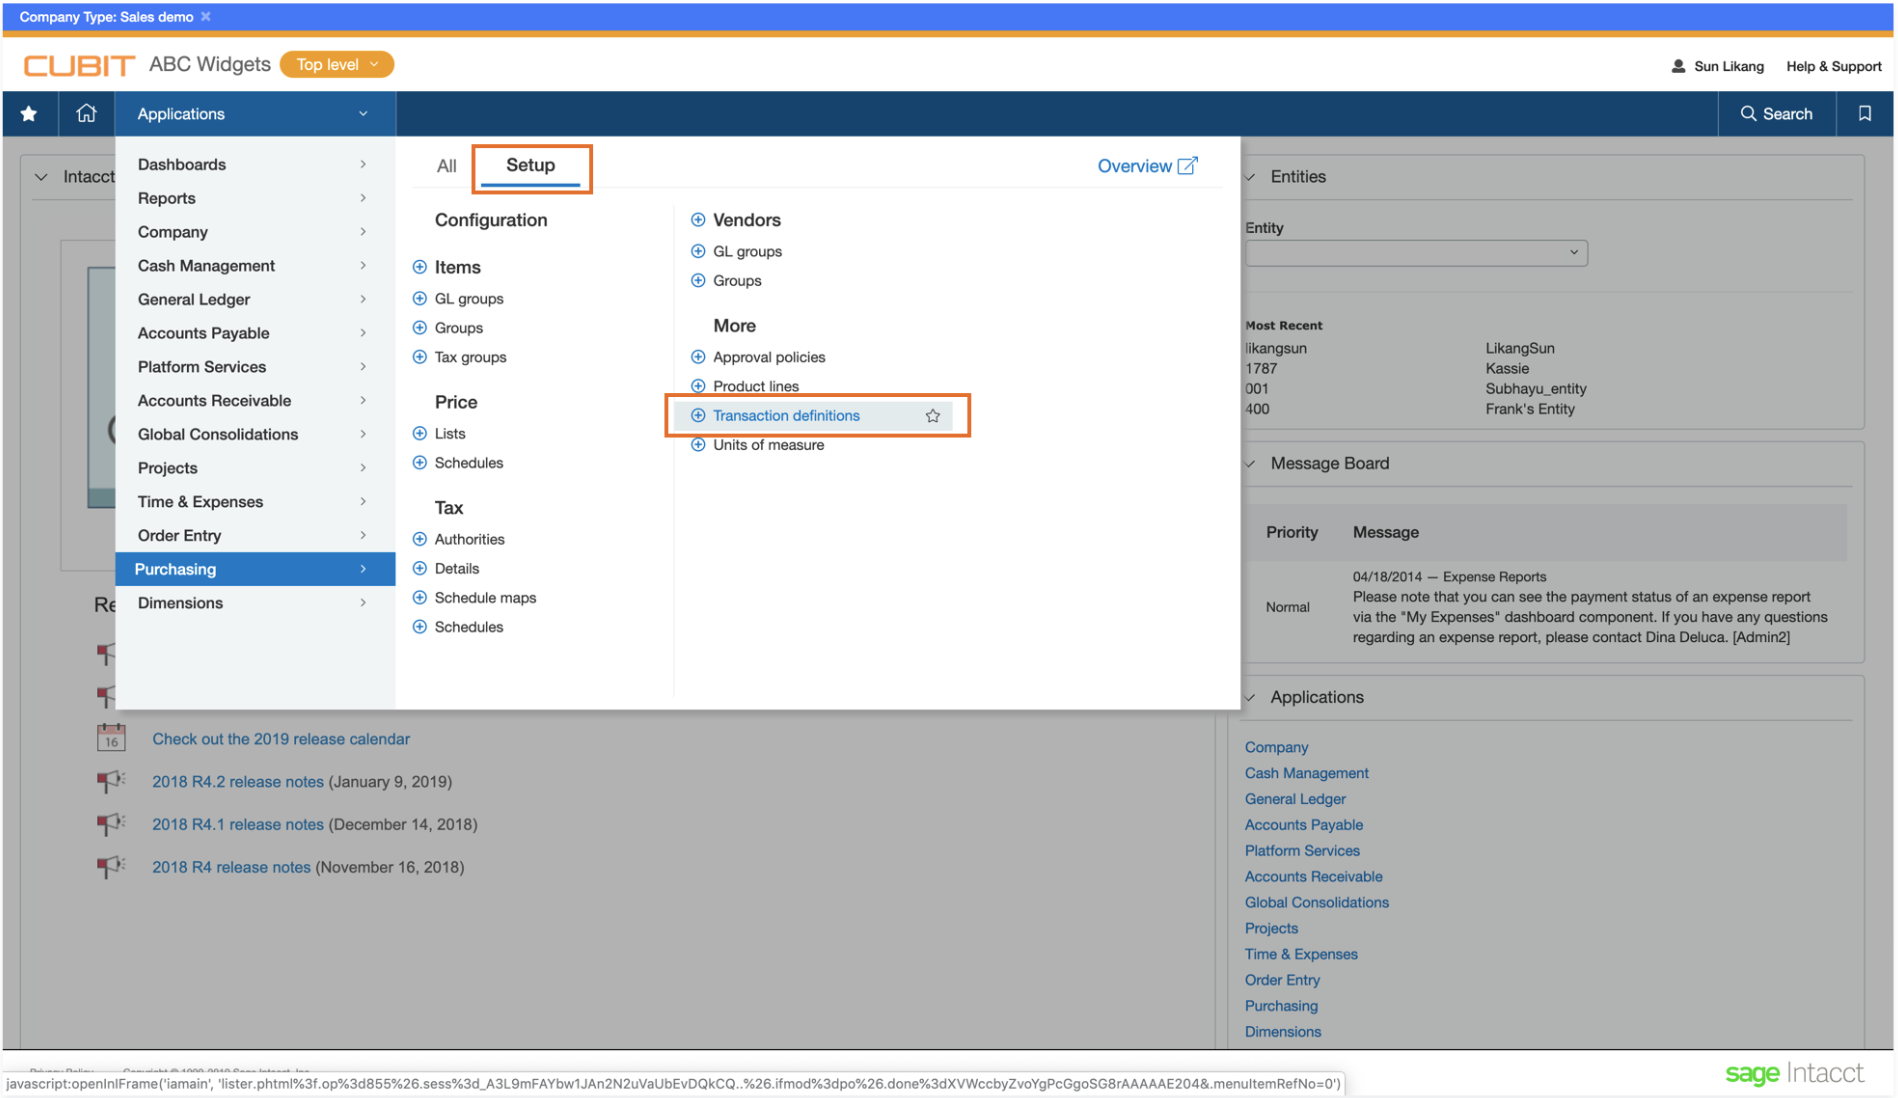 Transaction definitions link in Intacct